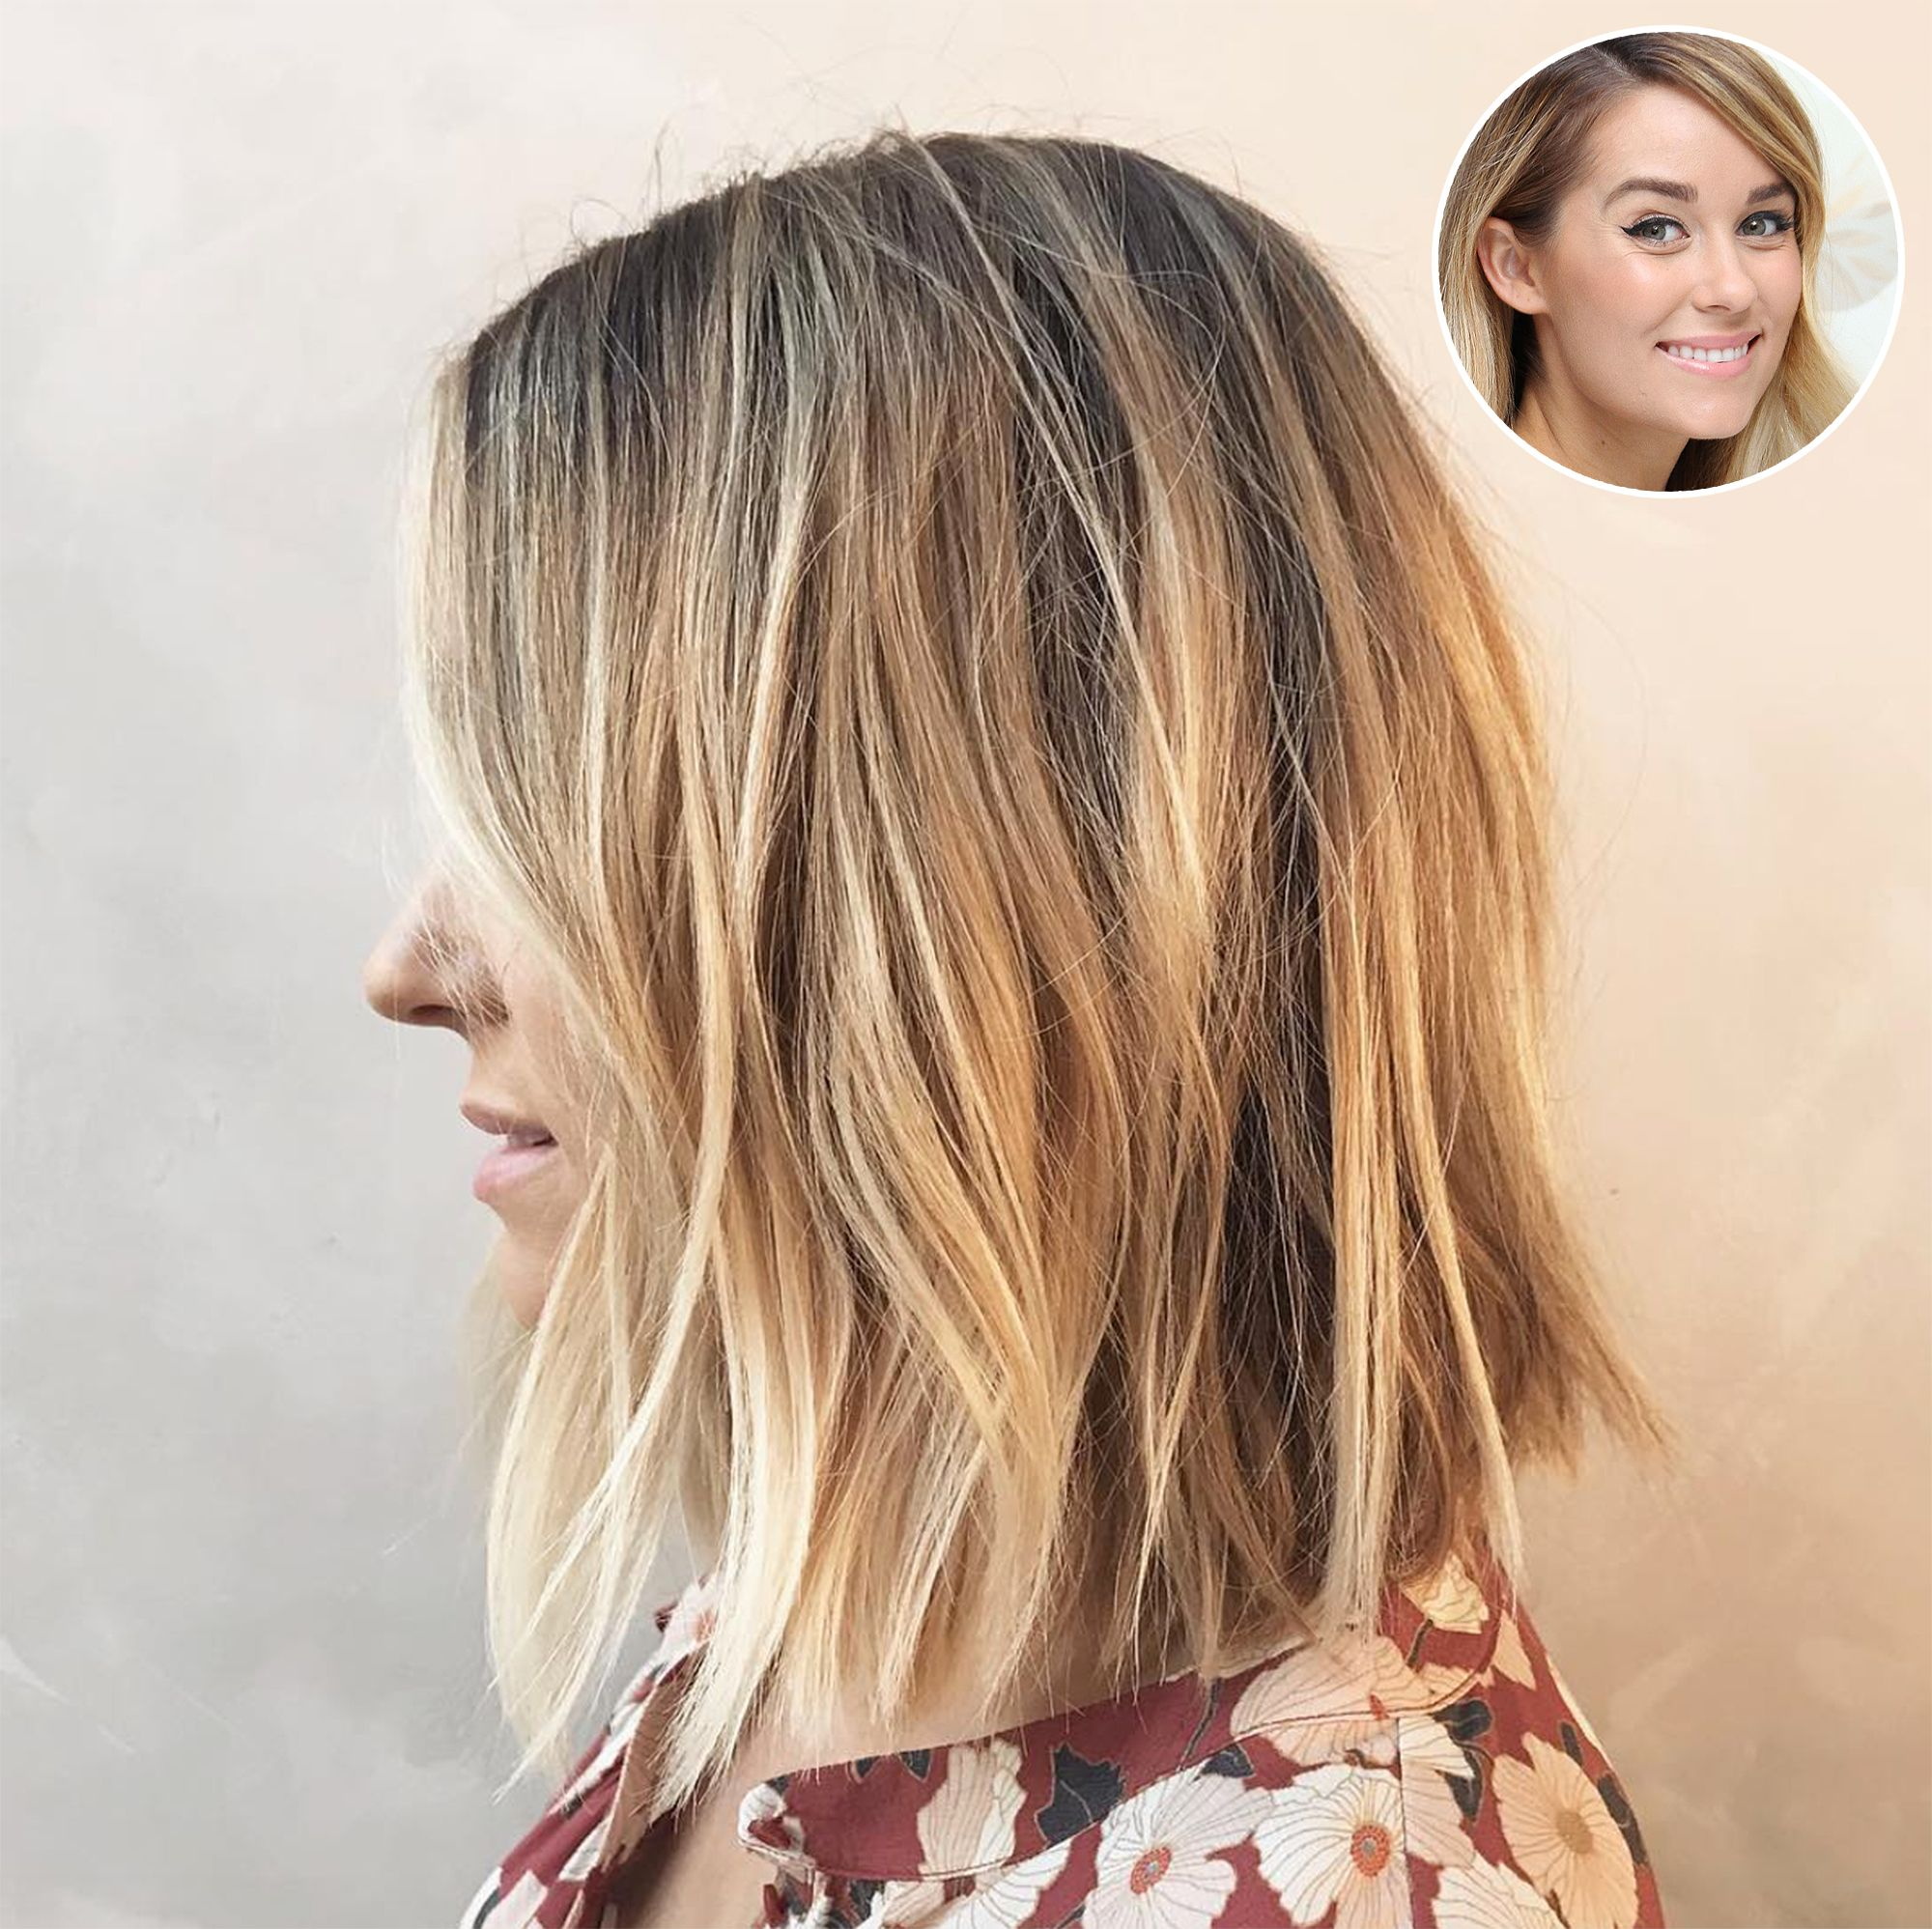 Lauren Conrad Explains Her Recent Dramatic Haircut I Don T Have Time For A Lot Of Hair Hair Styles Thick Hair Styles Lauren Conrad Hair